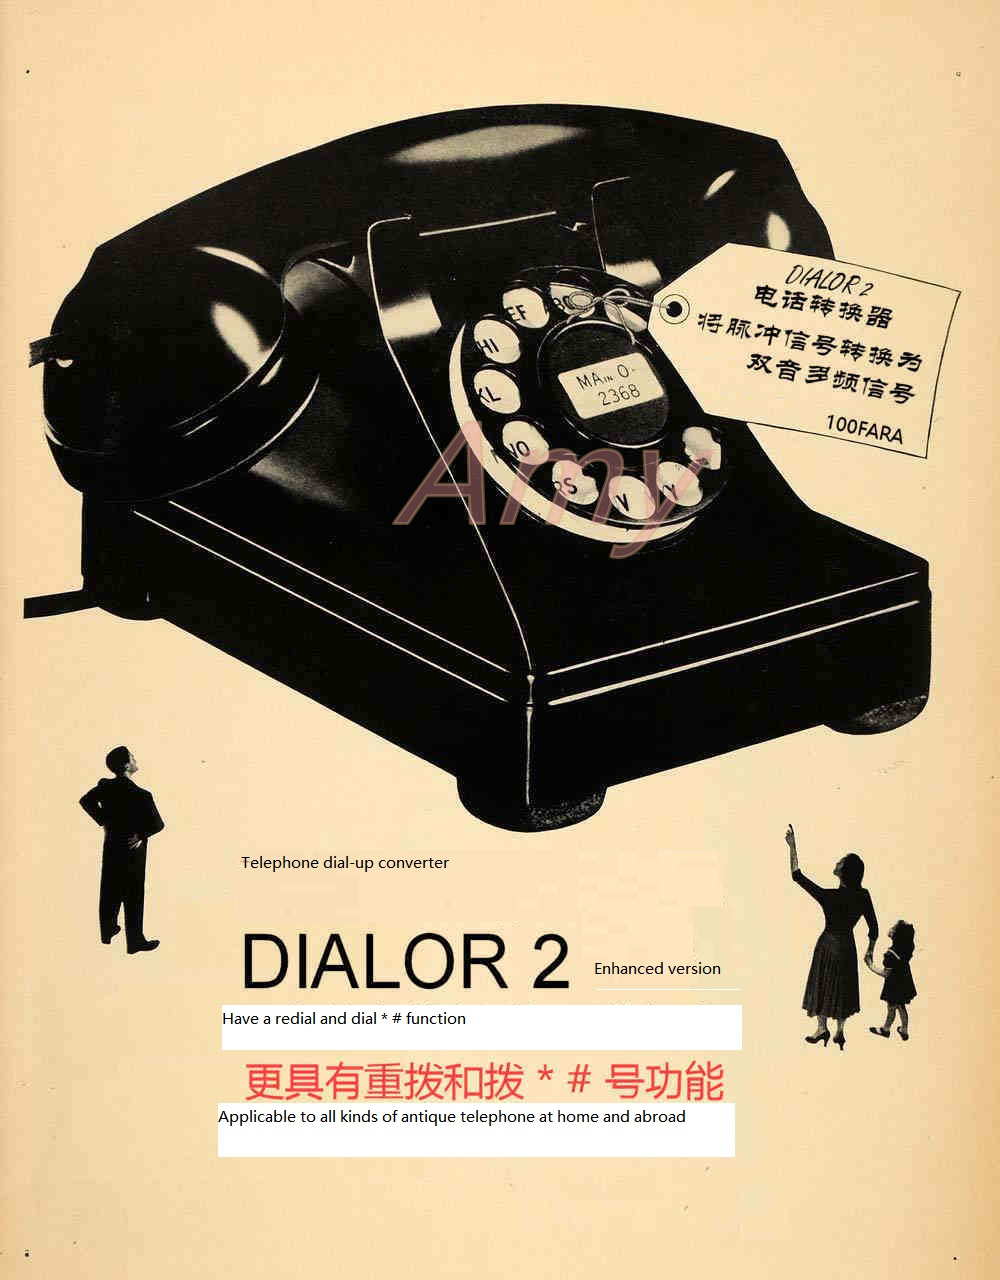 The Old Dial Phone / Pulse To Dual Tone Converter Supports The Enhanced Version Of The European And American Japanese Telephone.